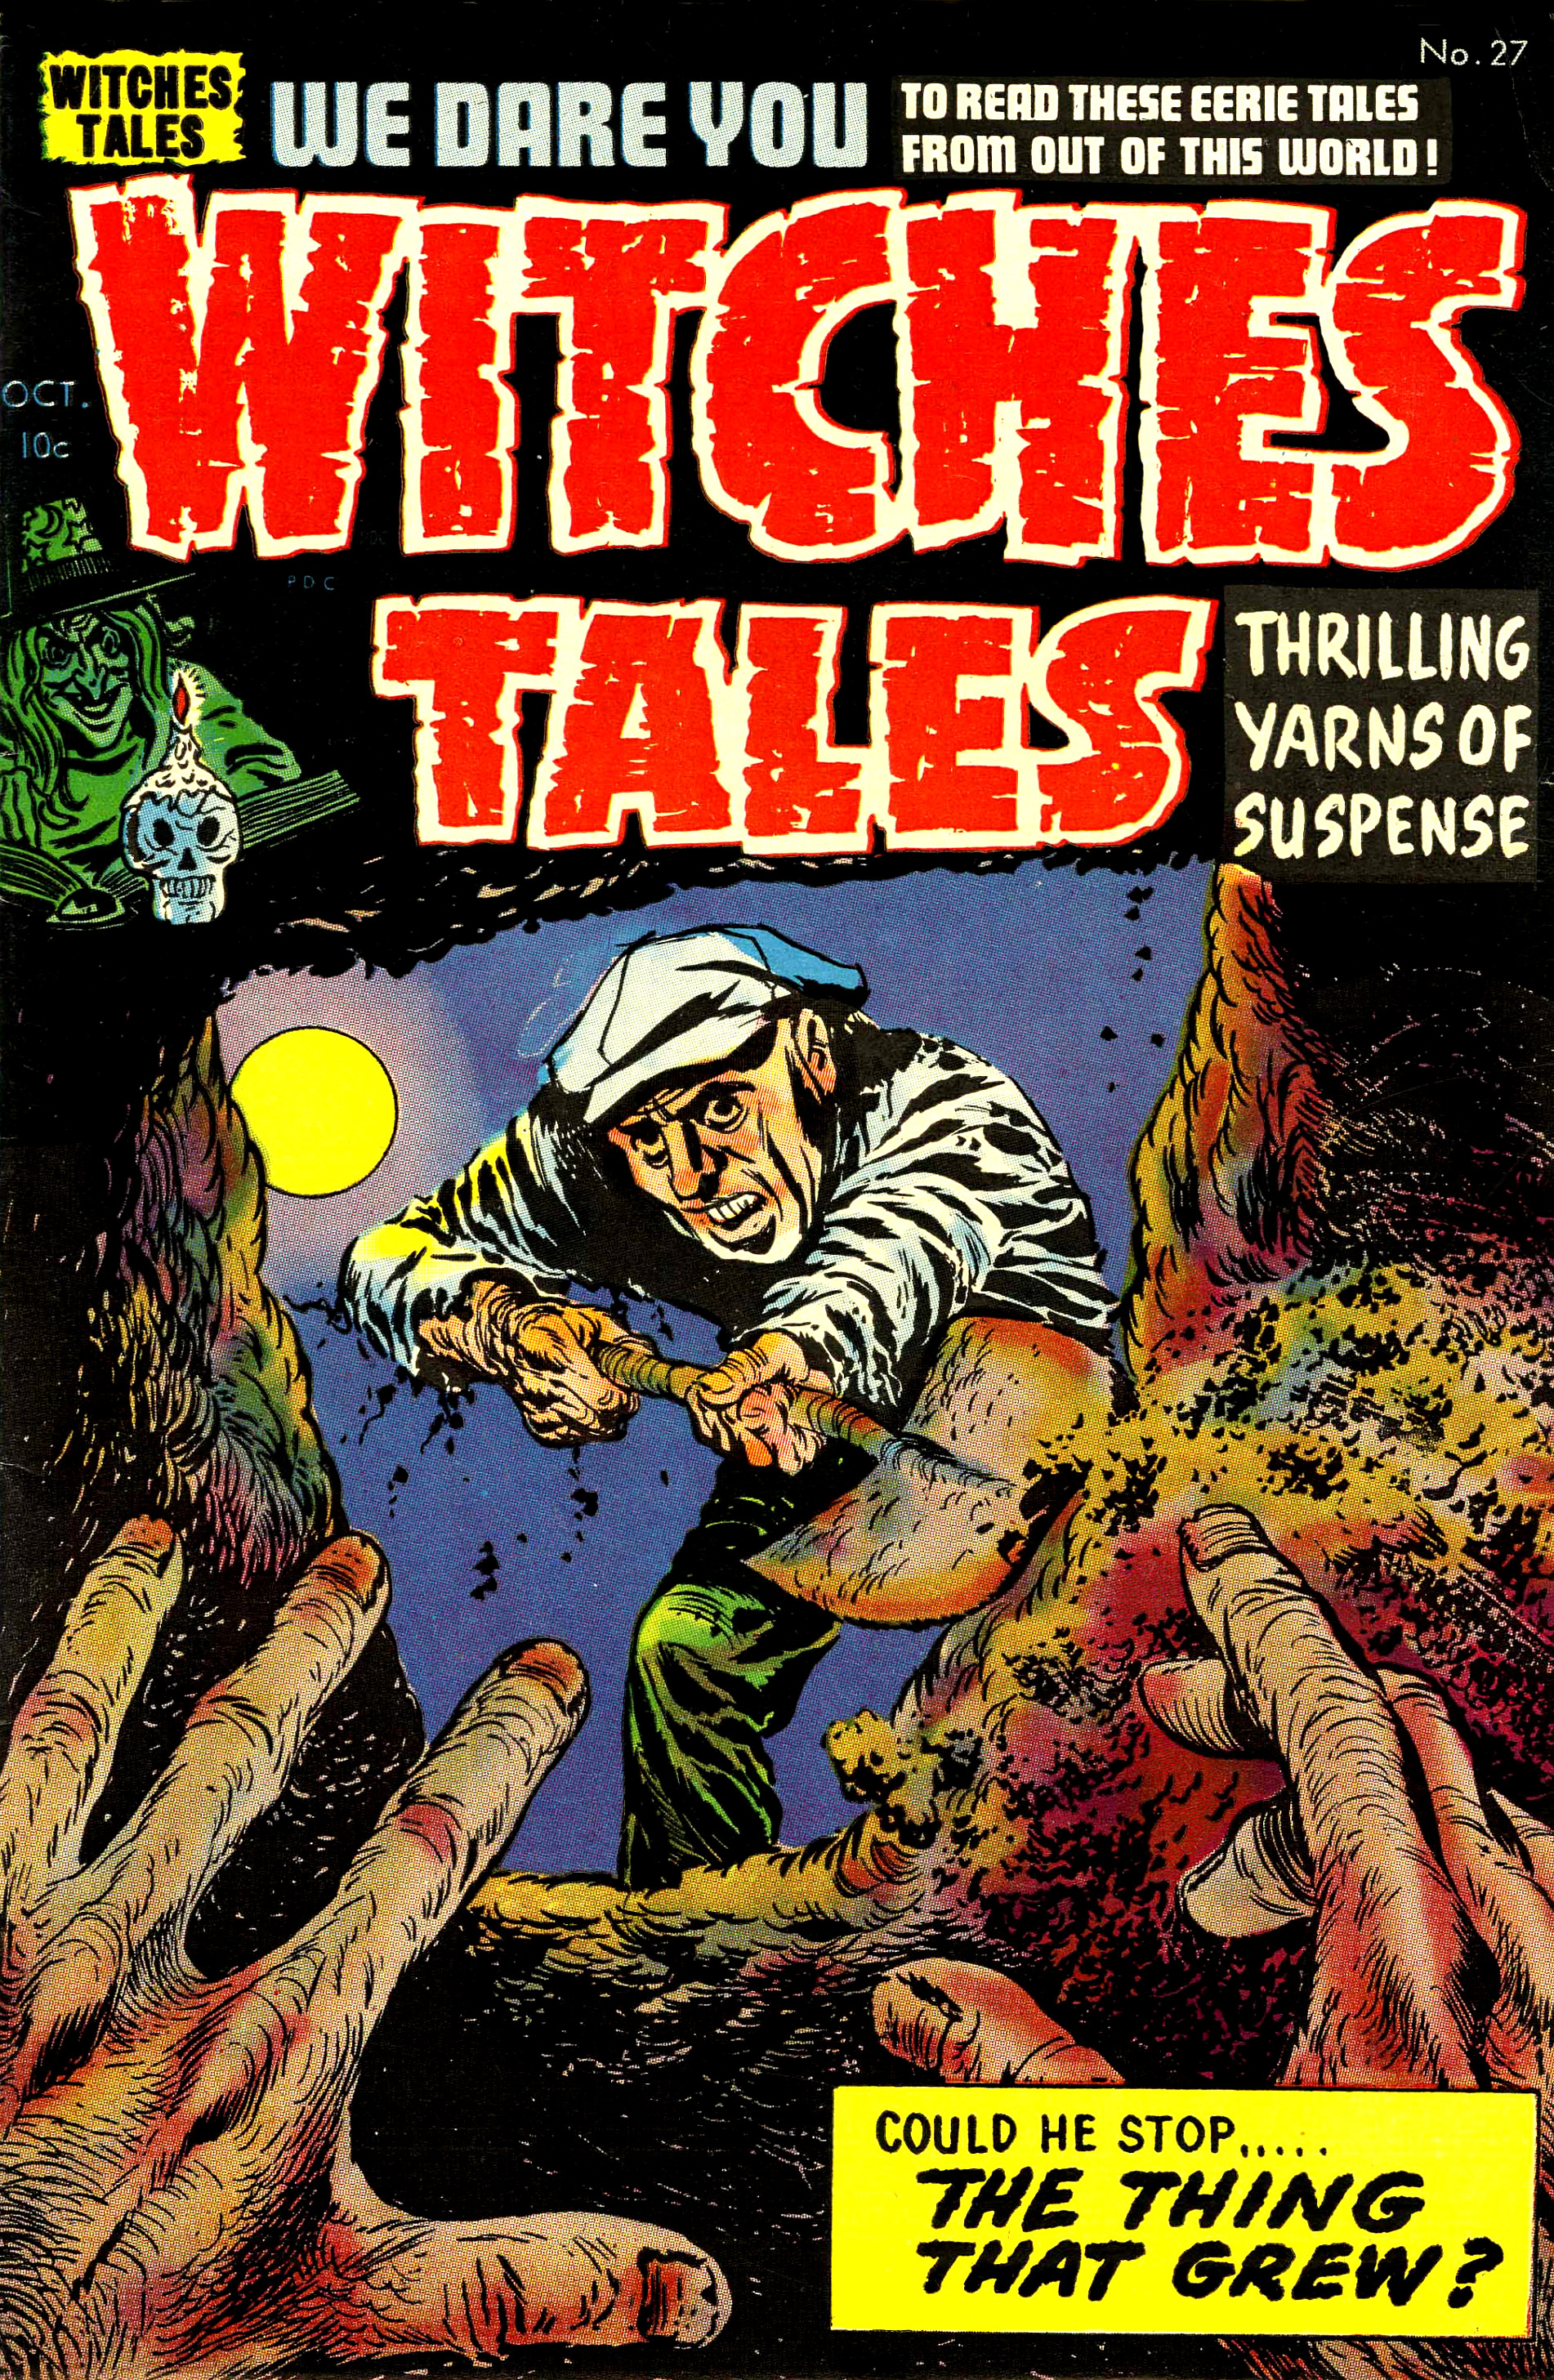 Witches Tales #27, Lee Elias Cover (Harvey, 1954)